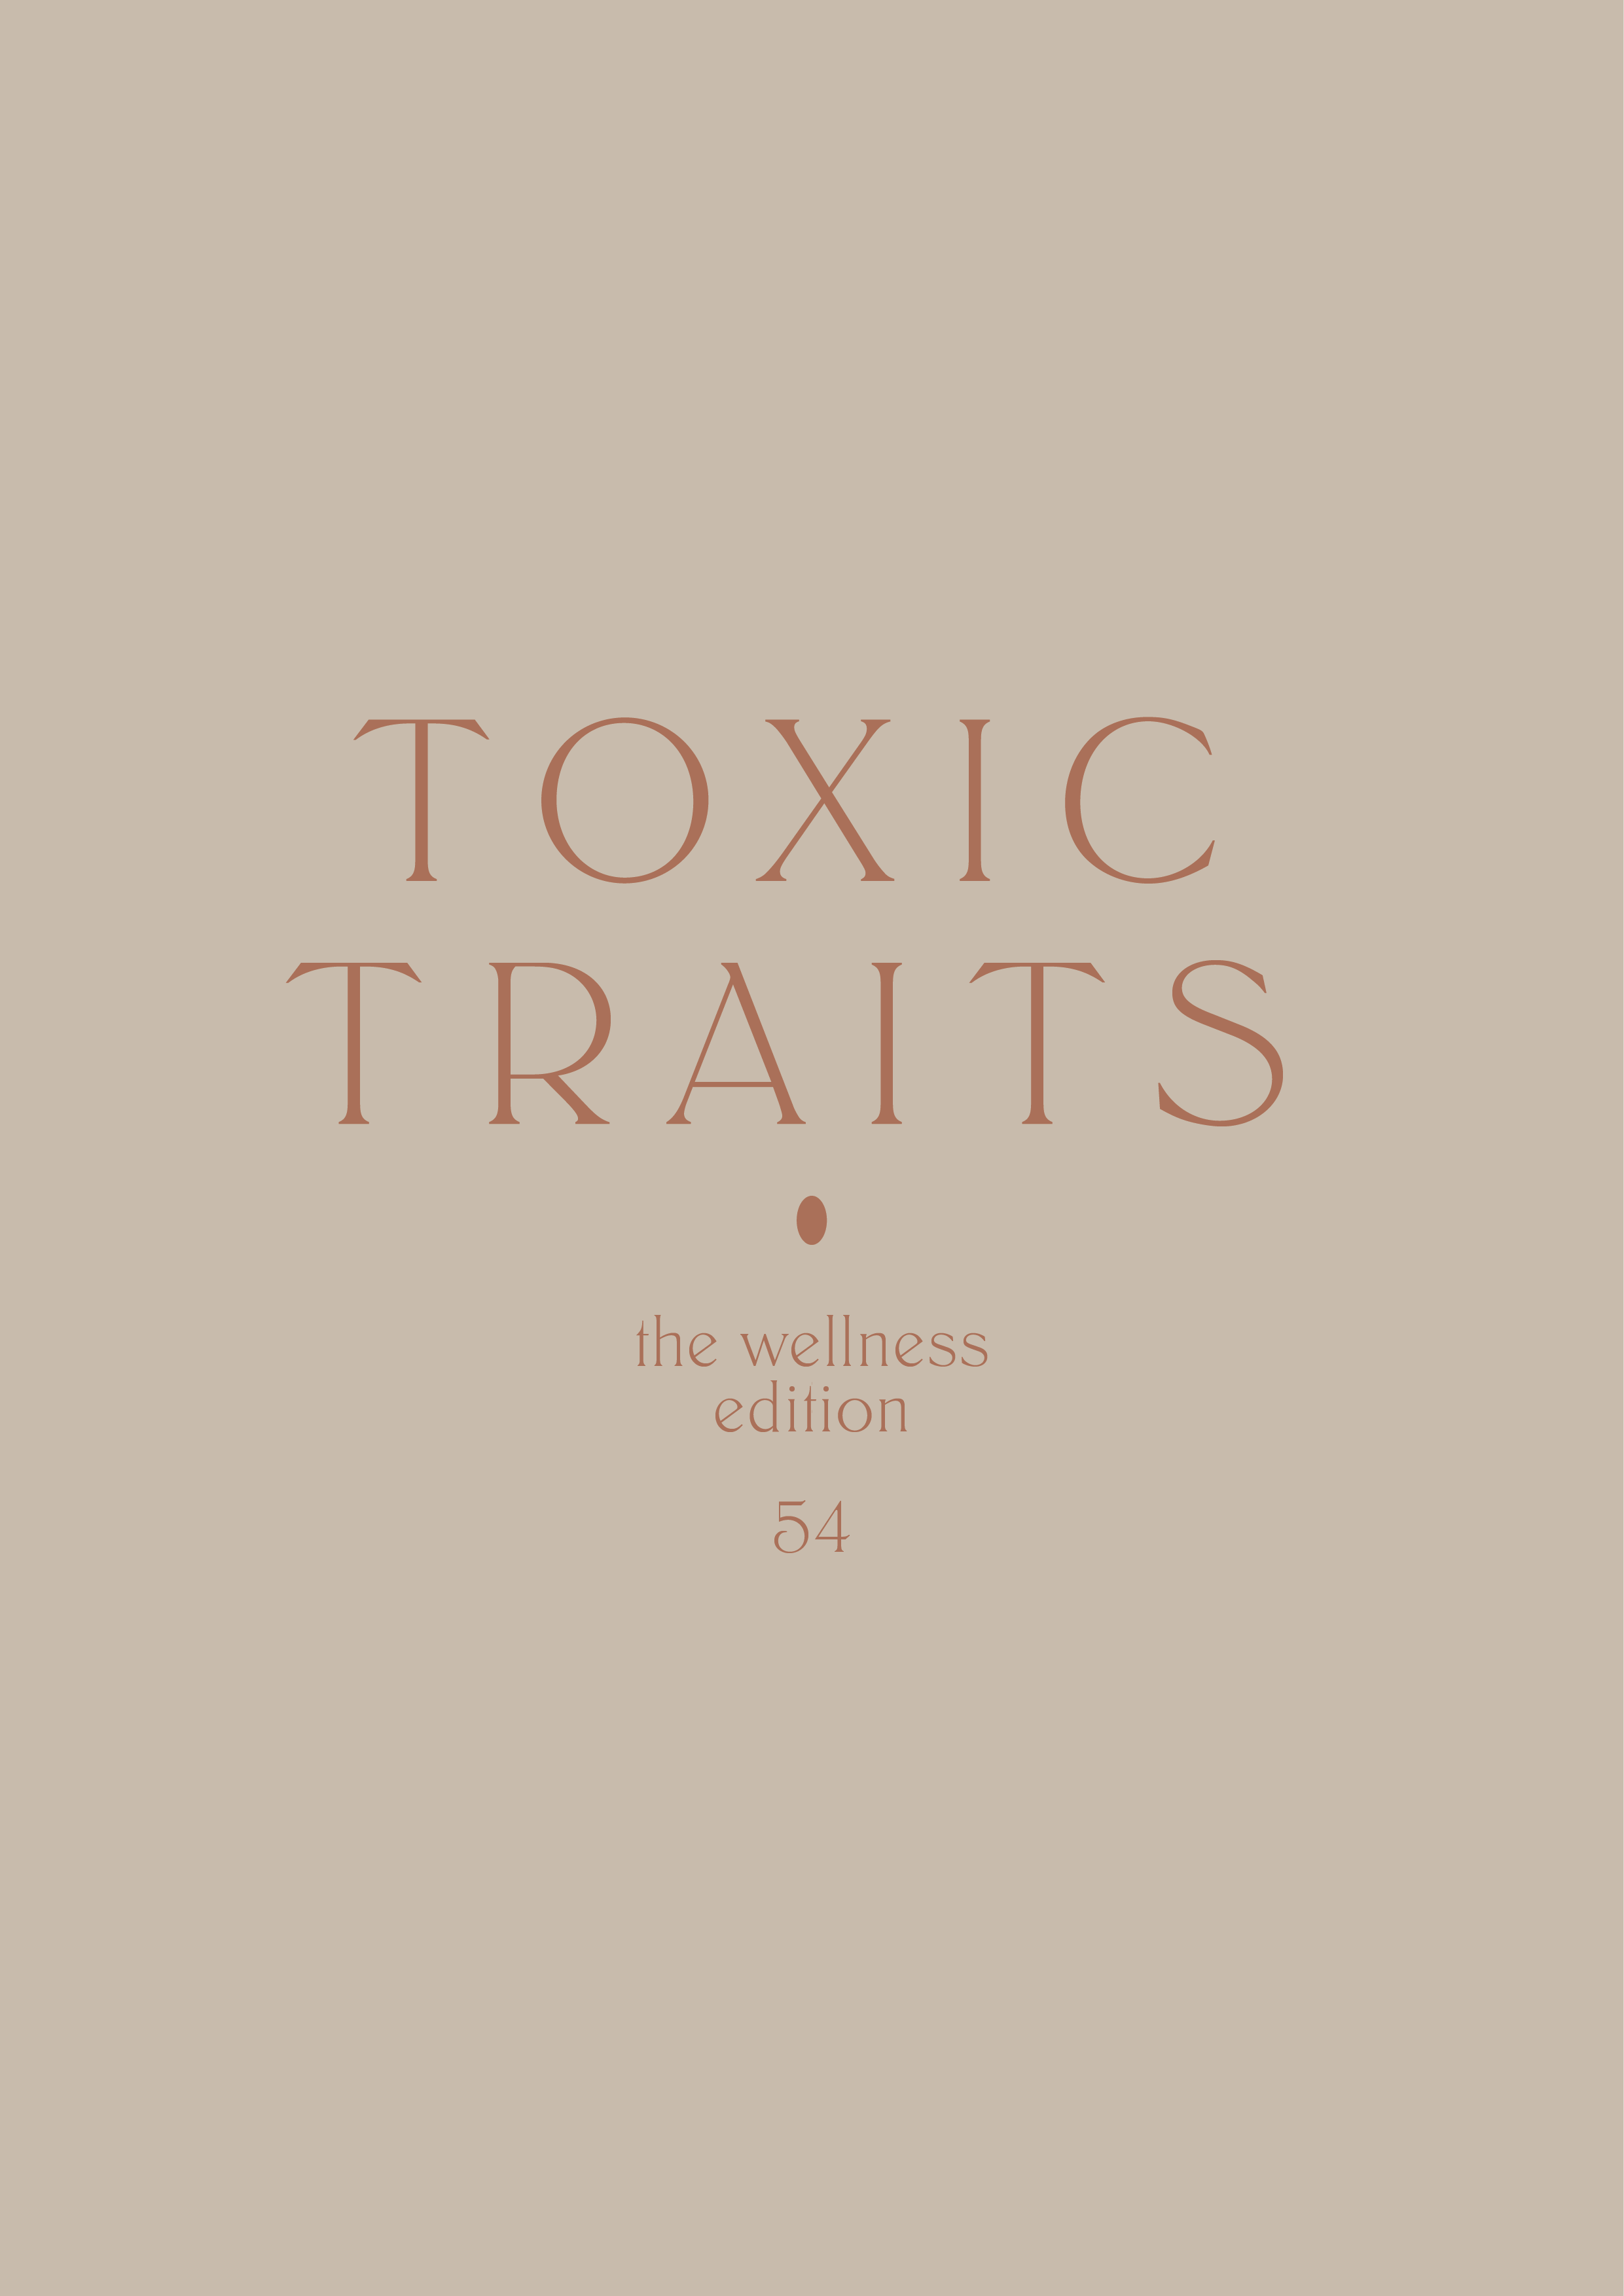 The Wellness Edition No.54 // Toxic Traits (Phylleli Design Studio and Self-Care Blog) #branding #typography #wellbeing #mentalhealth #selfcare #selflove #designblog #selfcareblog #designstudio #phylleli #thewellnessedition